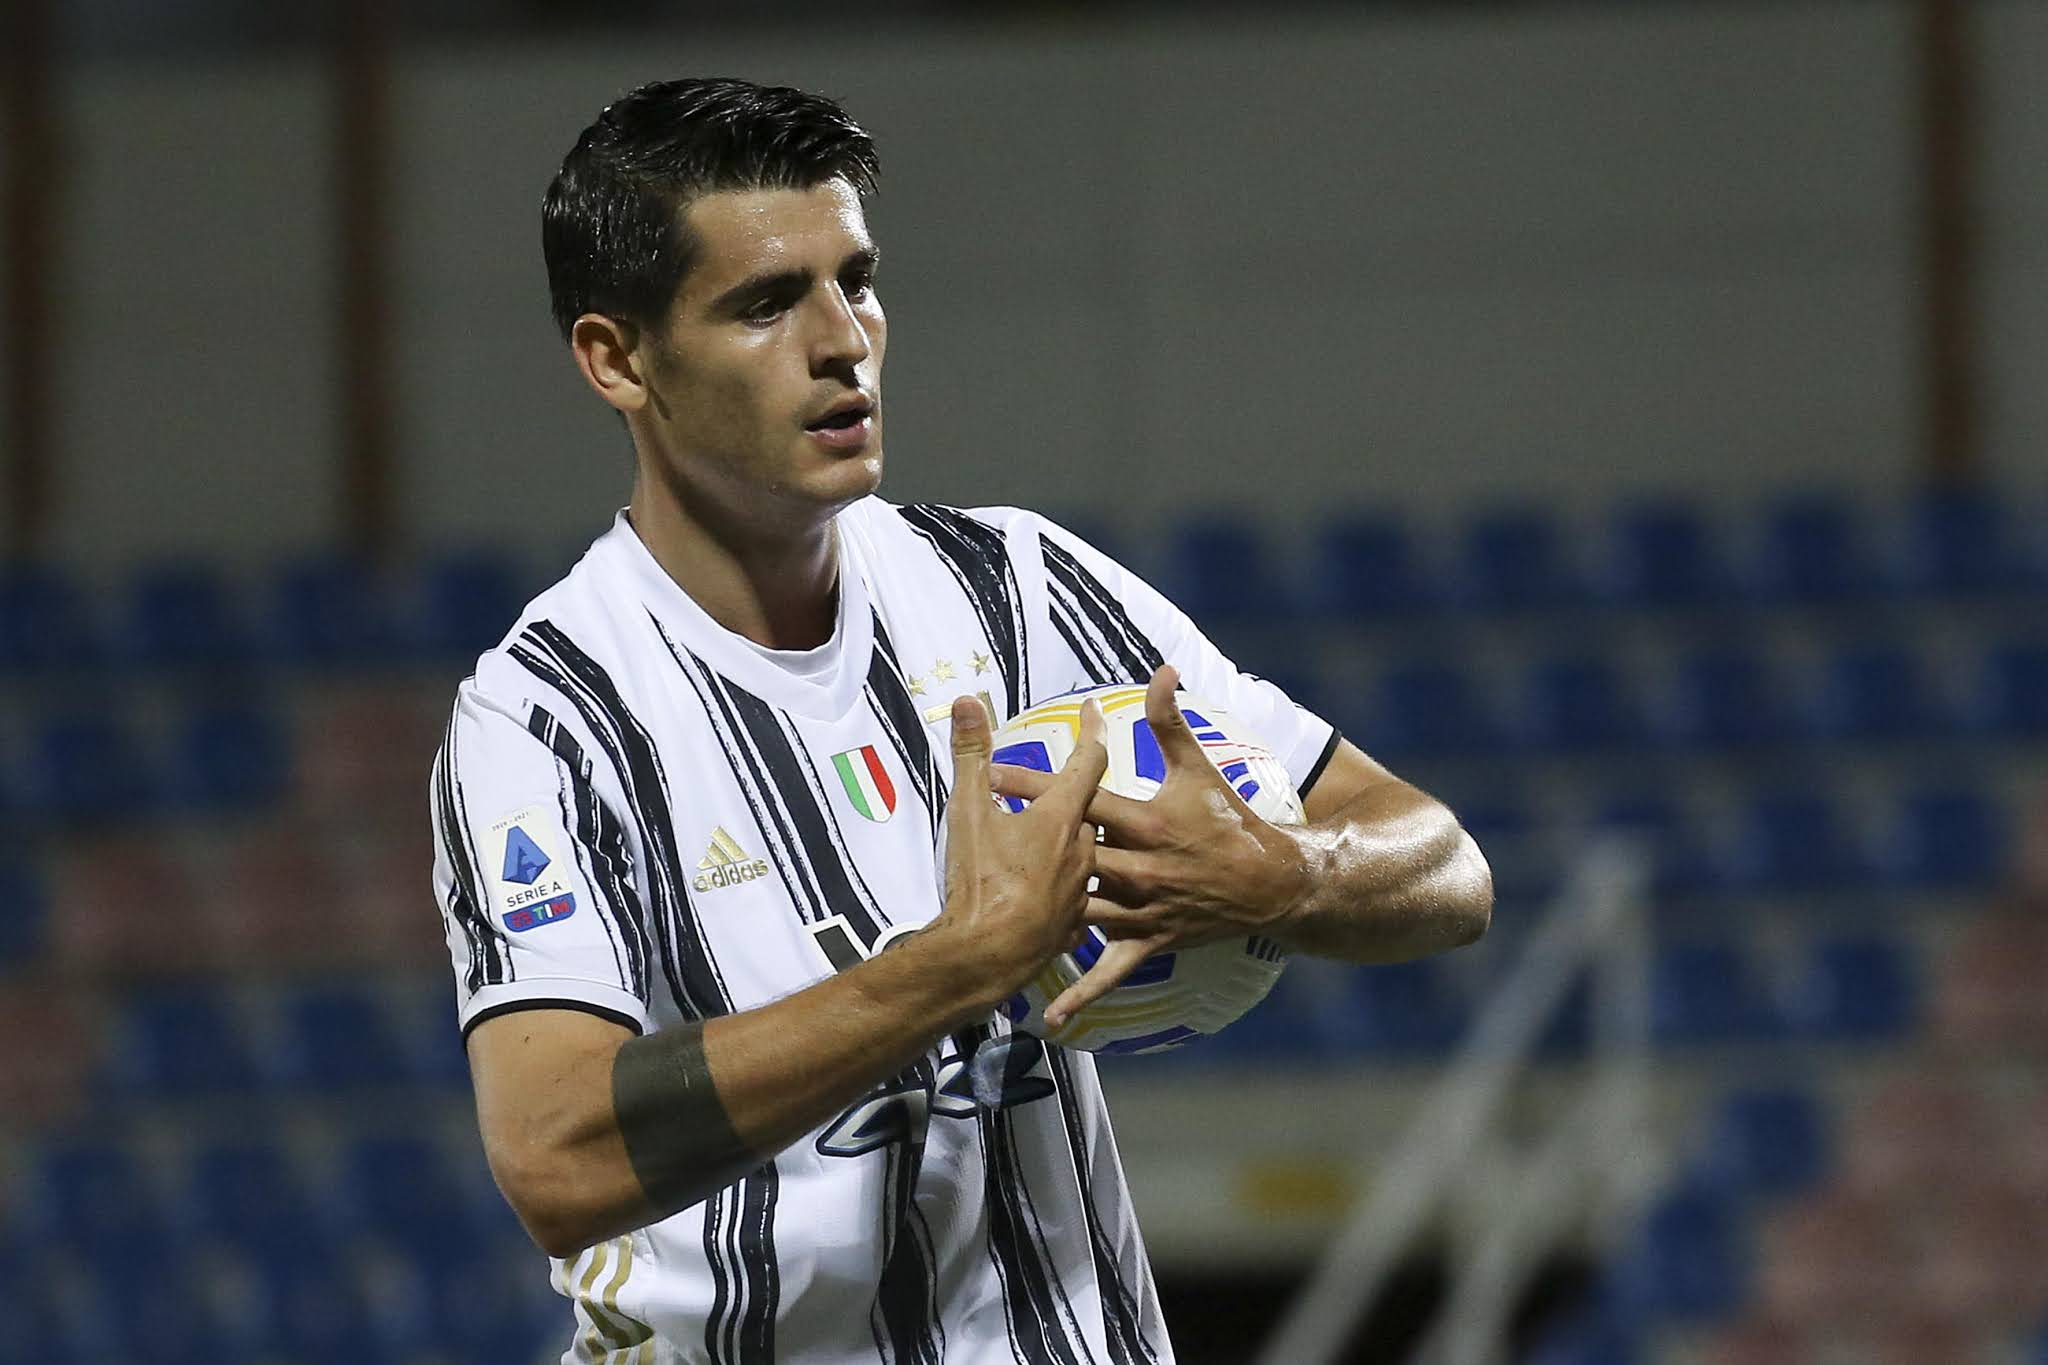 Juventus striker Alvaro Morata marked his return with a goal last weekend